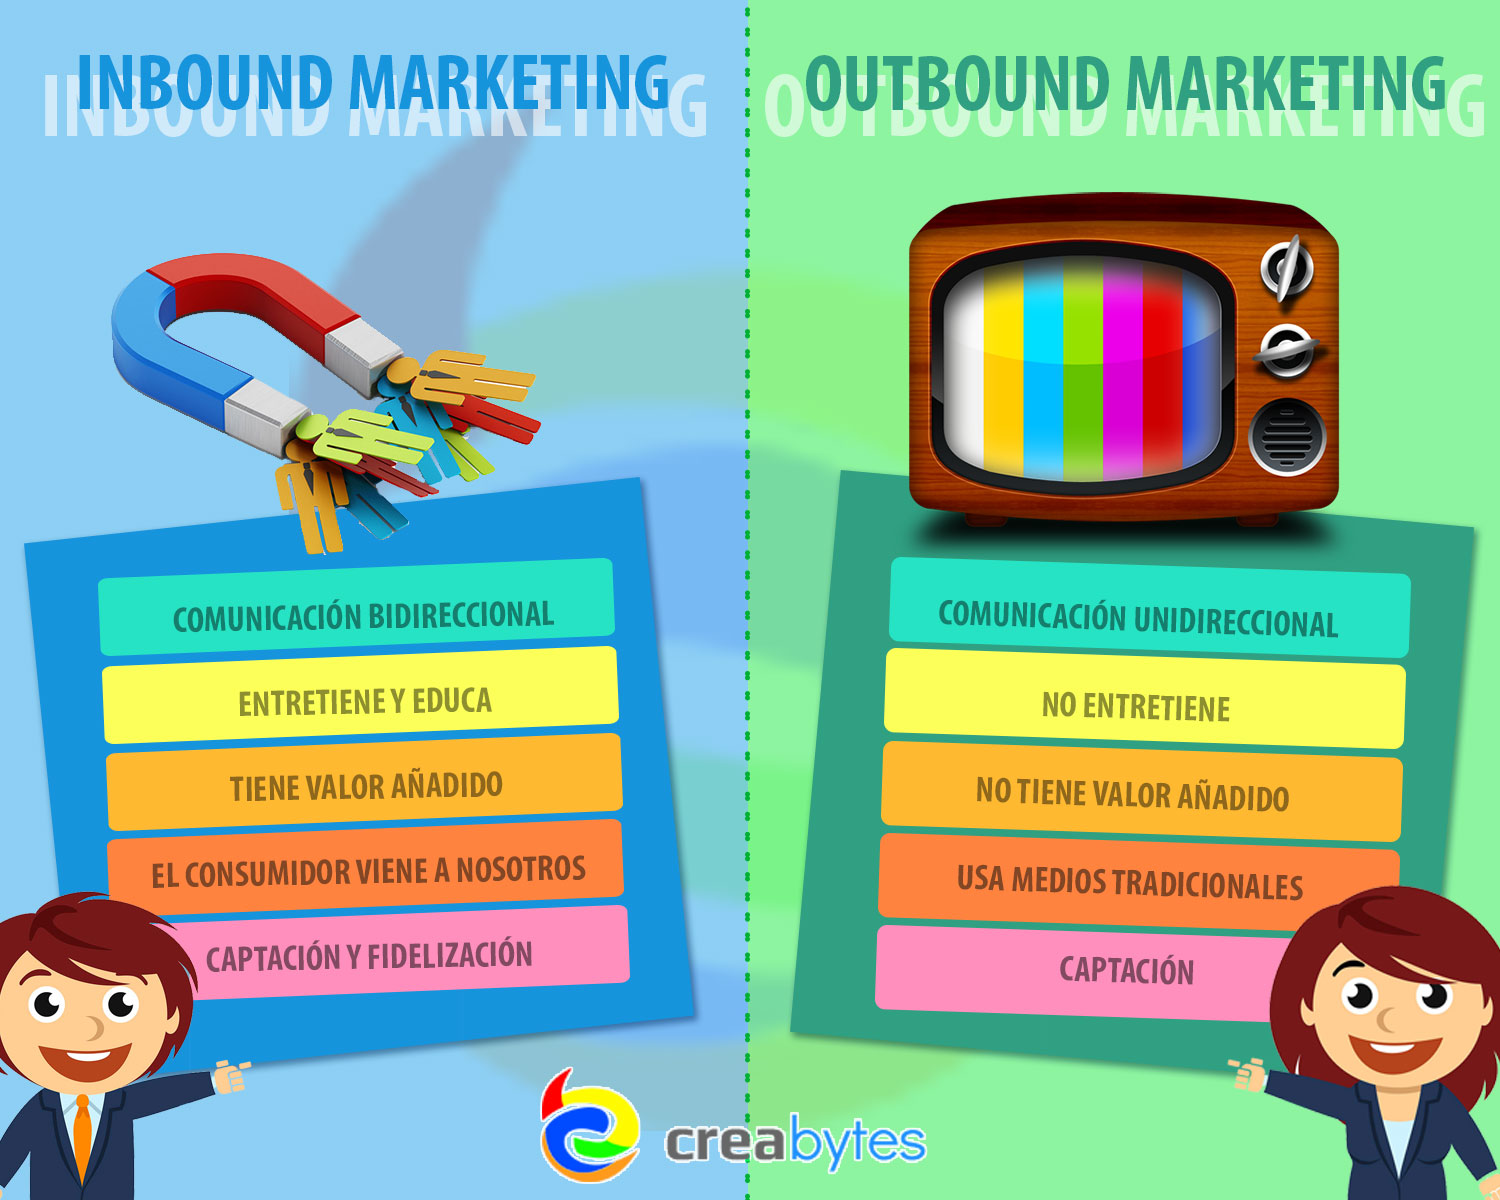 diferencias entre inbound y outbound marketing